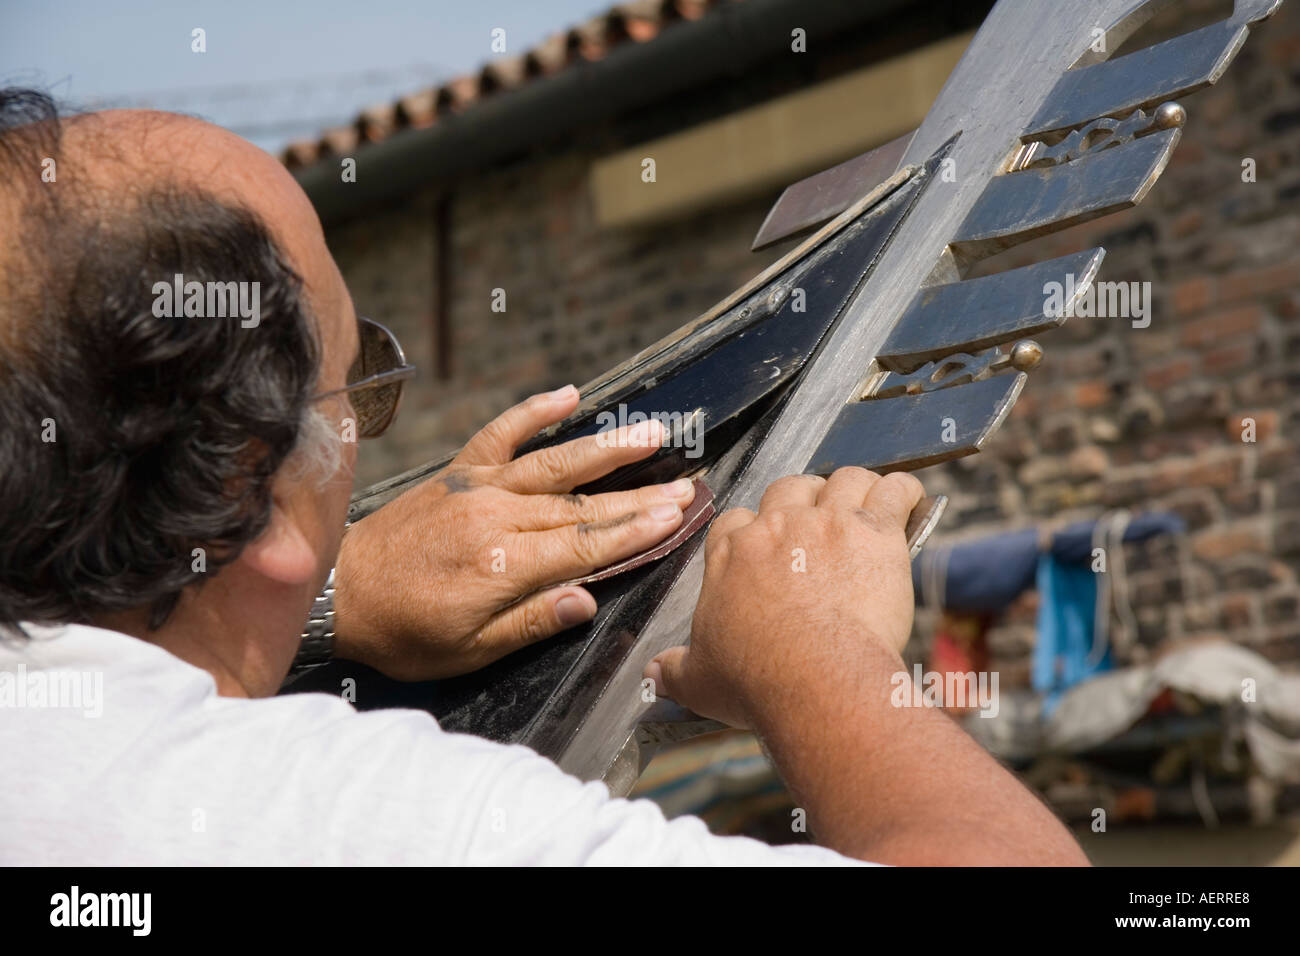 Craftsman using sandpaper to prepare gondola for repainting in the boatyard of D Tramontin Figli - Stock Image